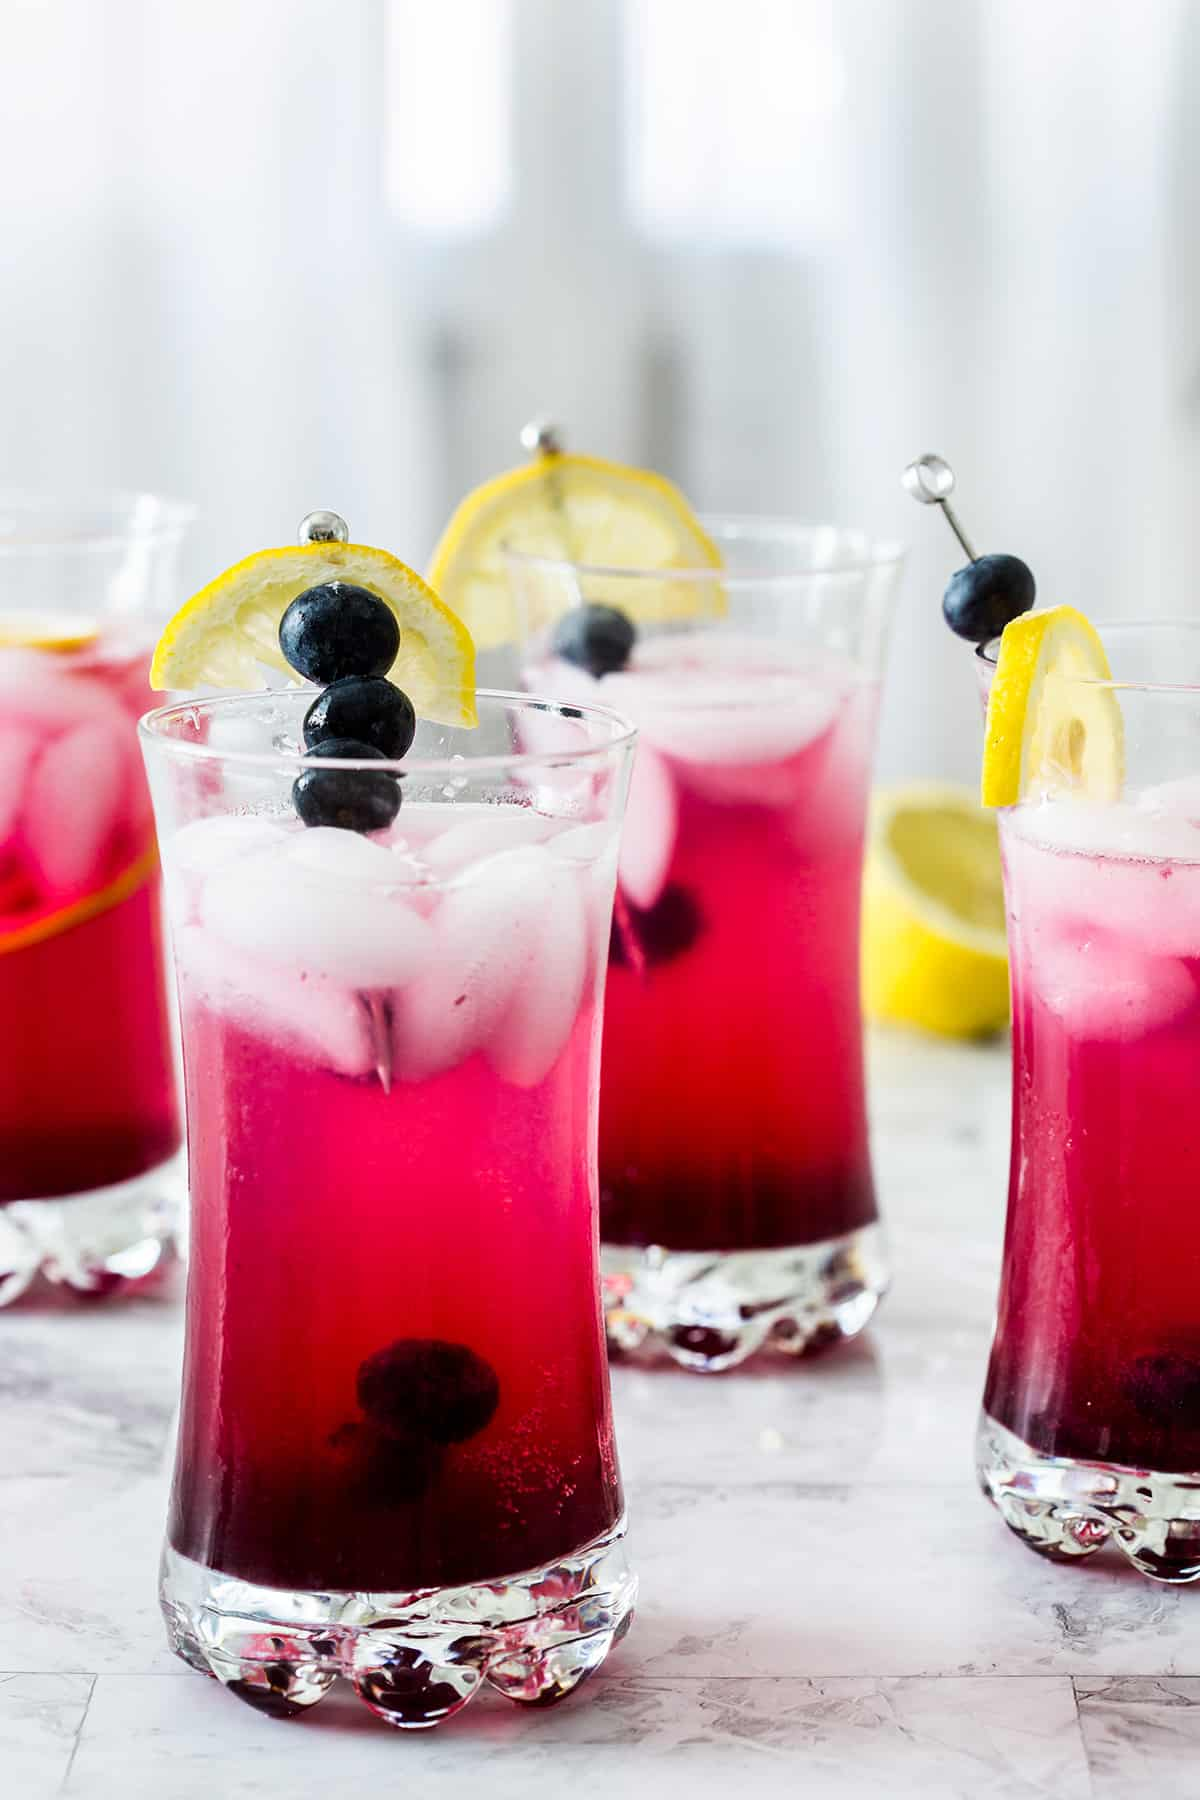 The blueberry vodka lemonade cocktail after mixed, showing a bright red-ish hue.